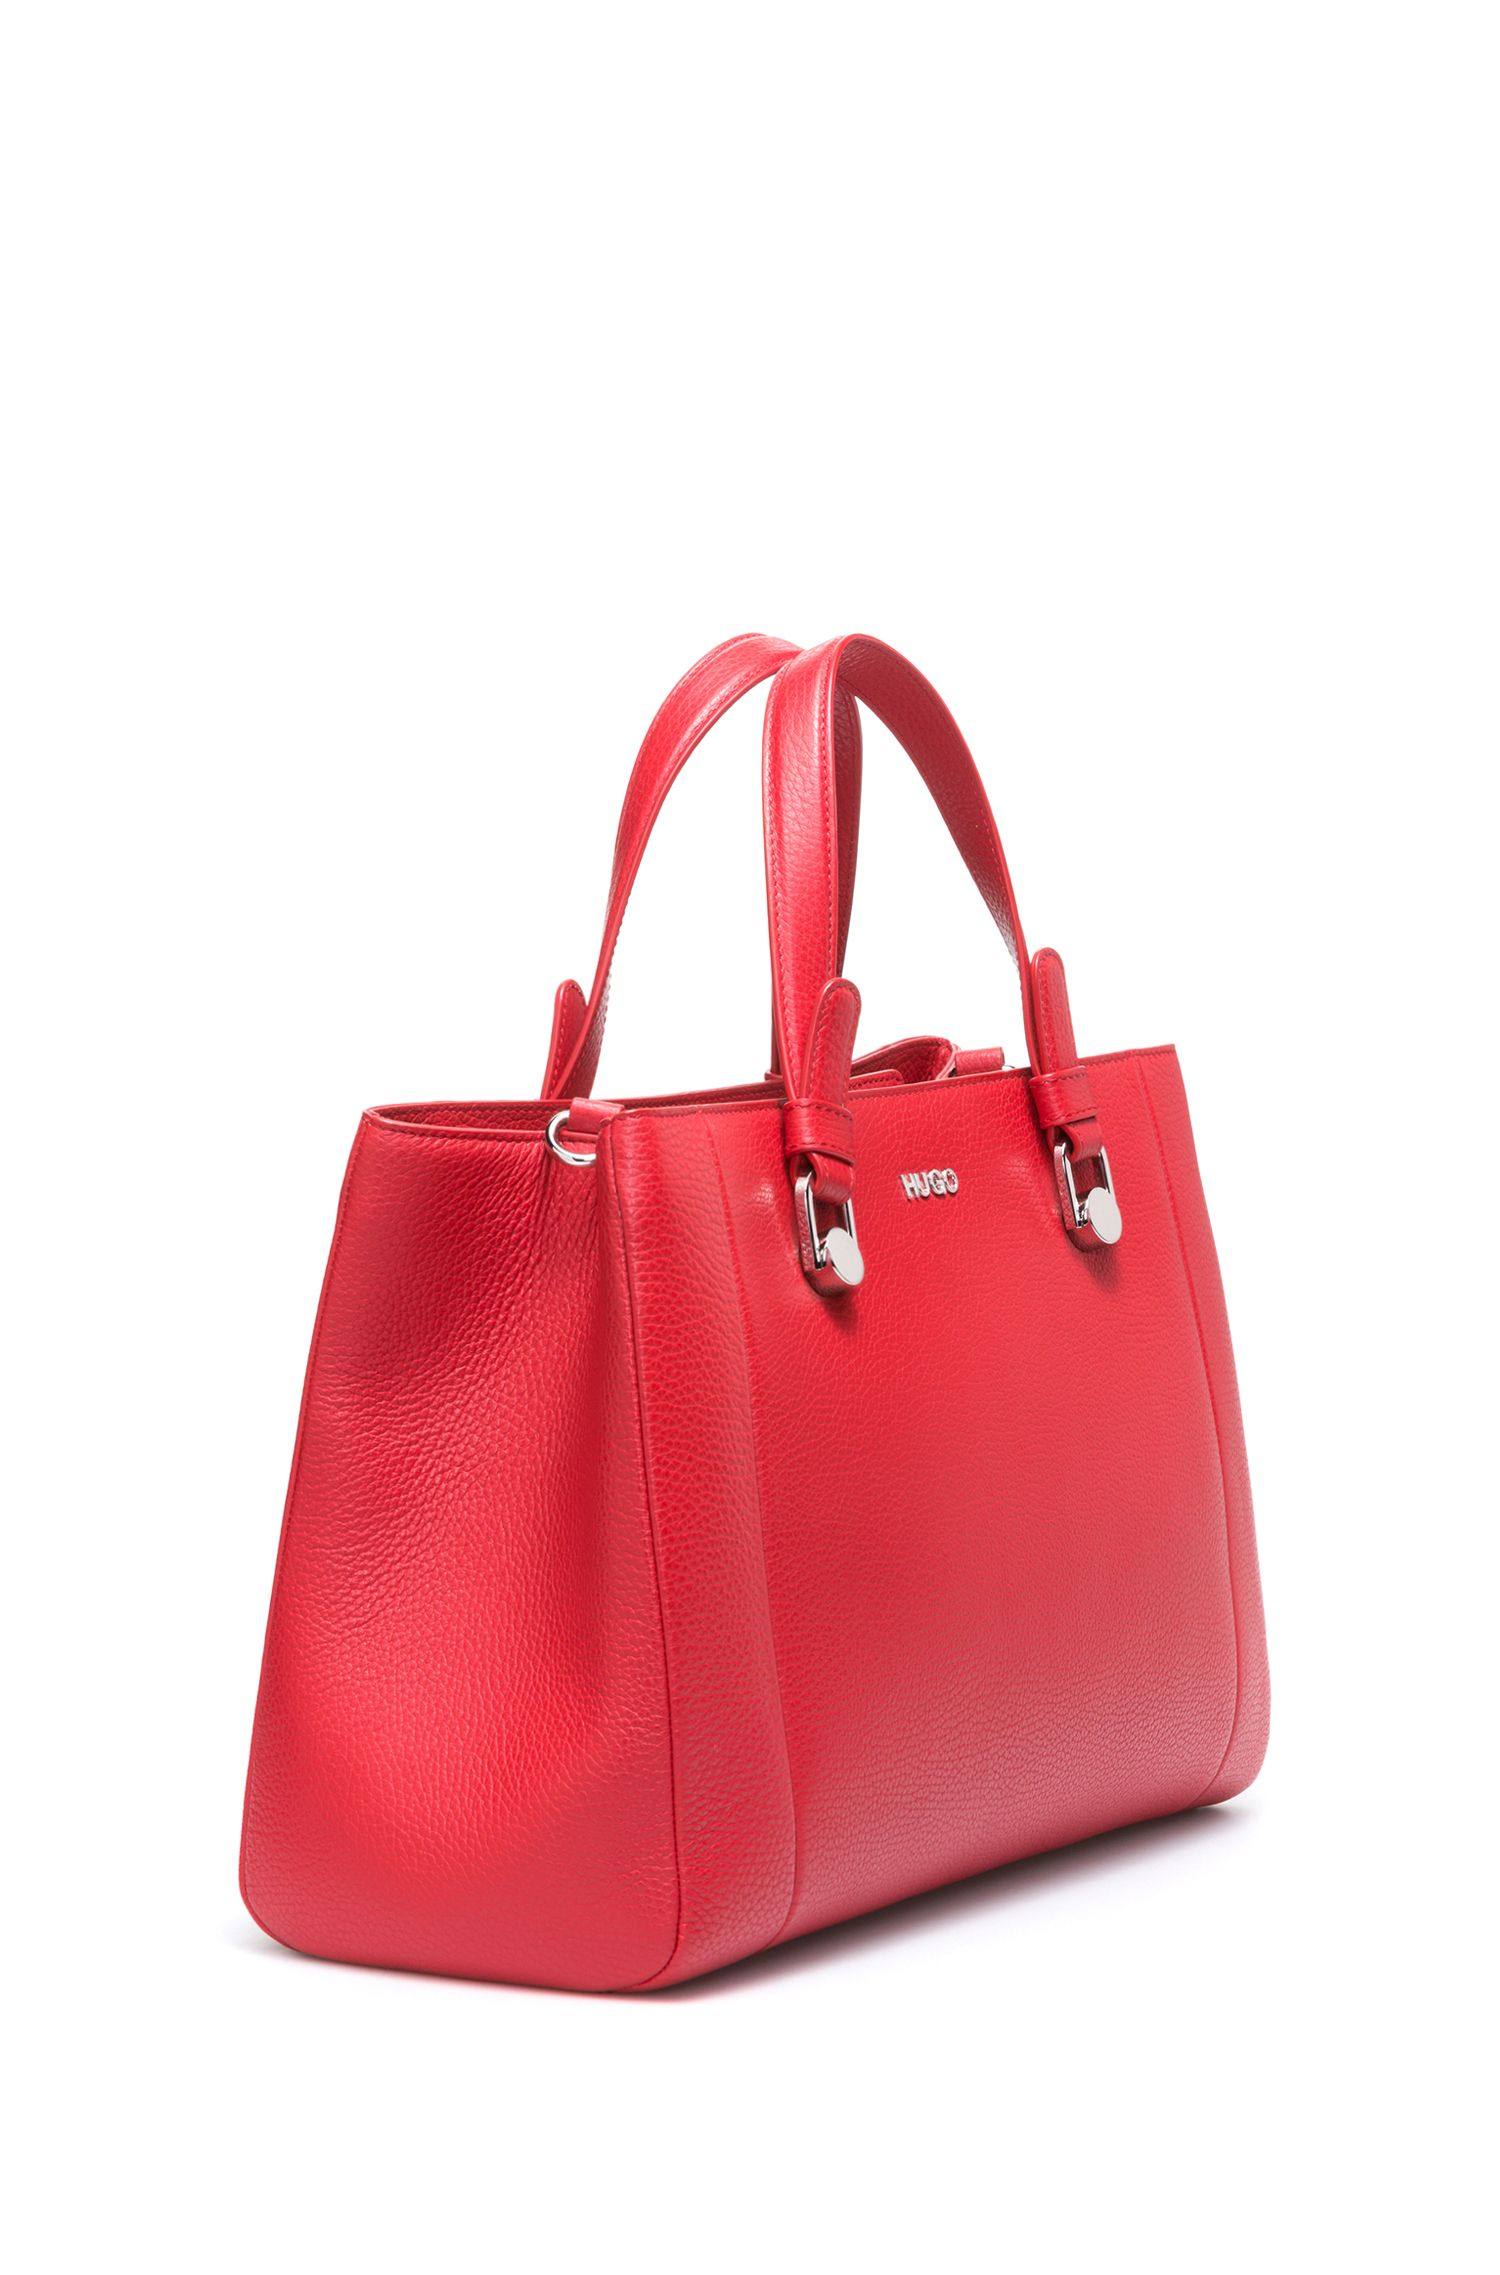 Tote handbag in grained Italian leather, Red